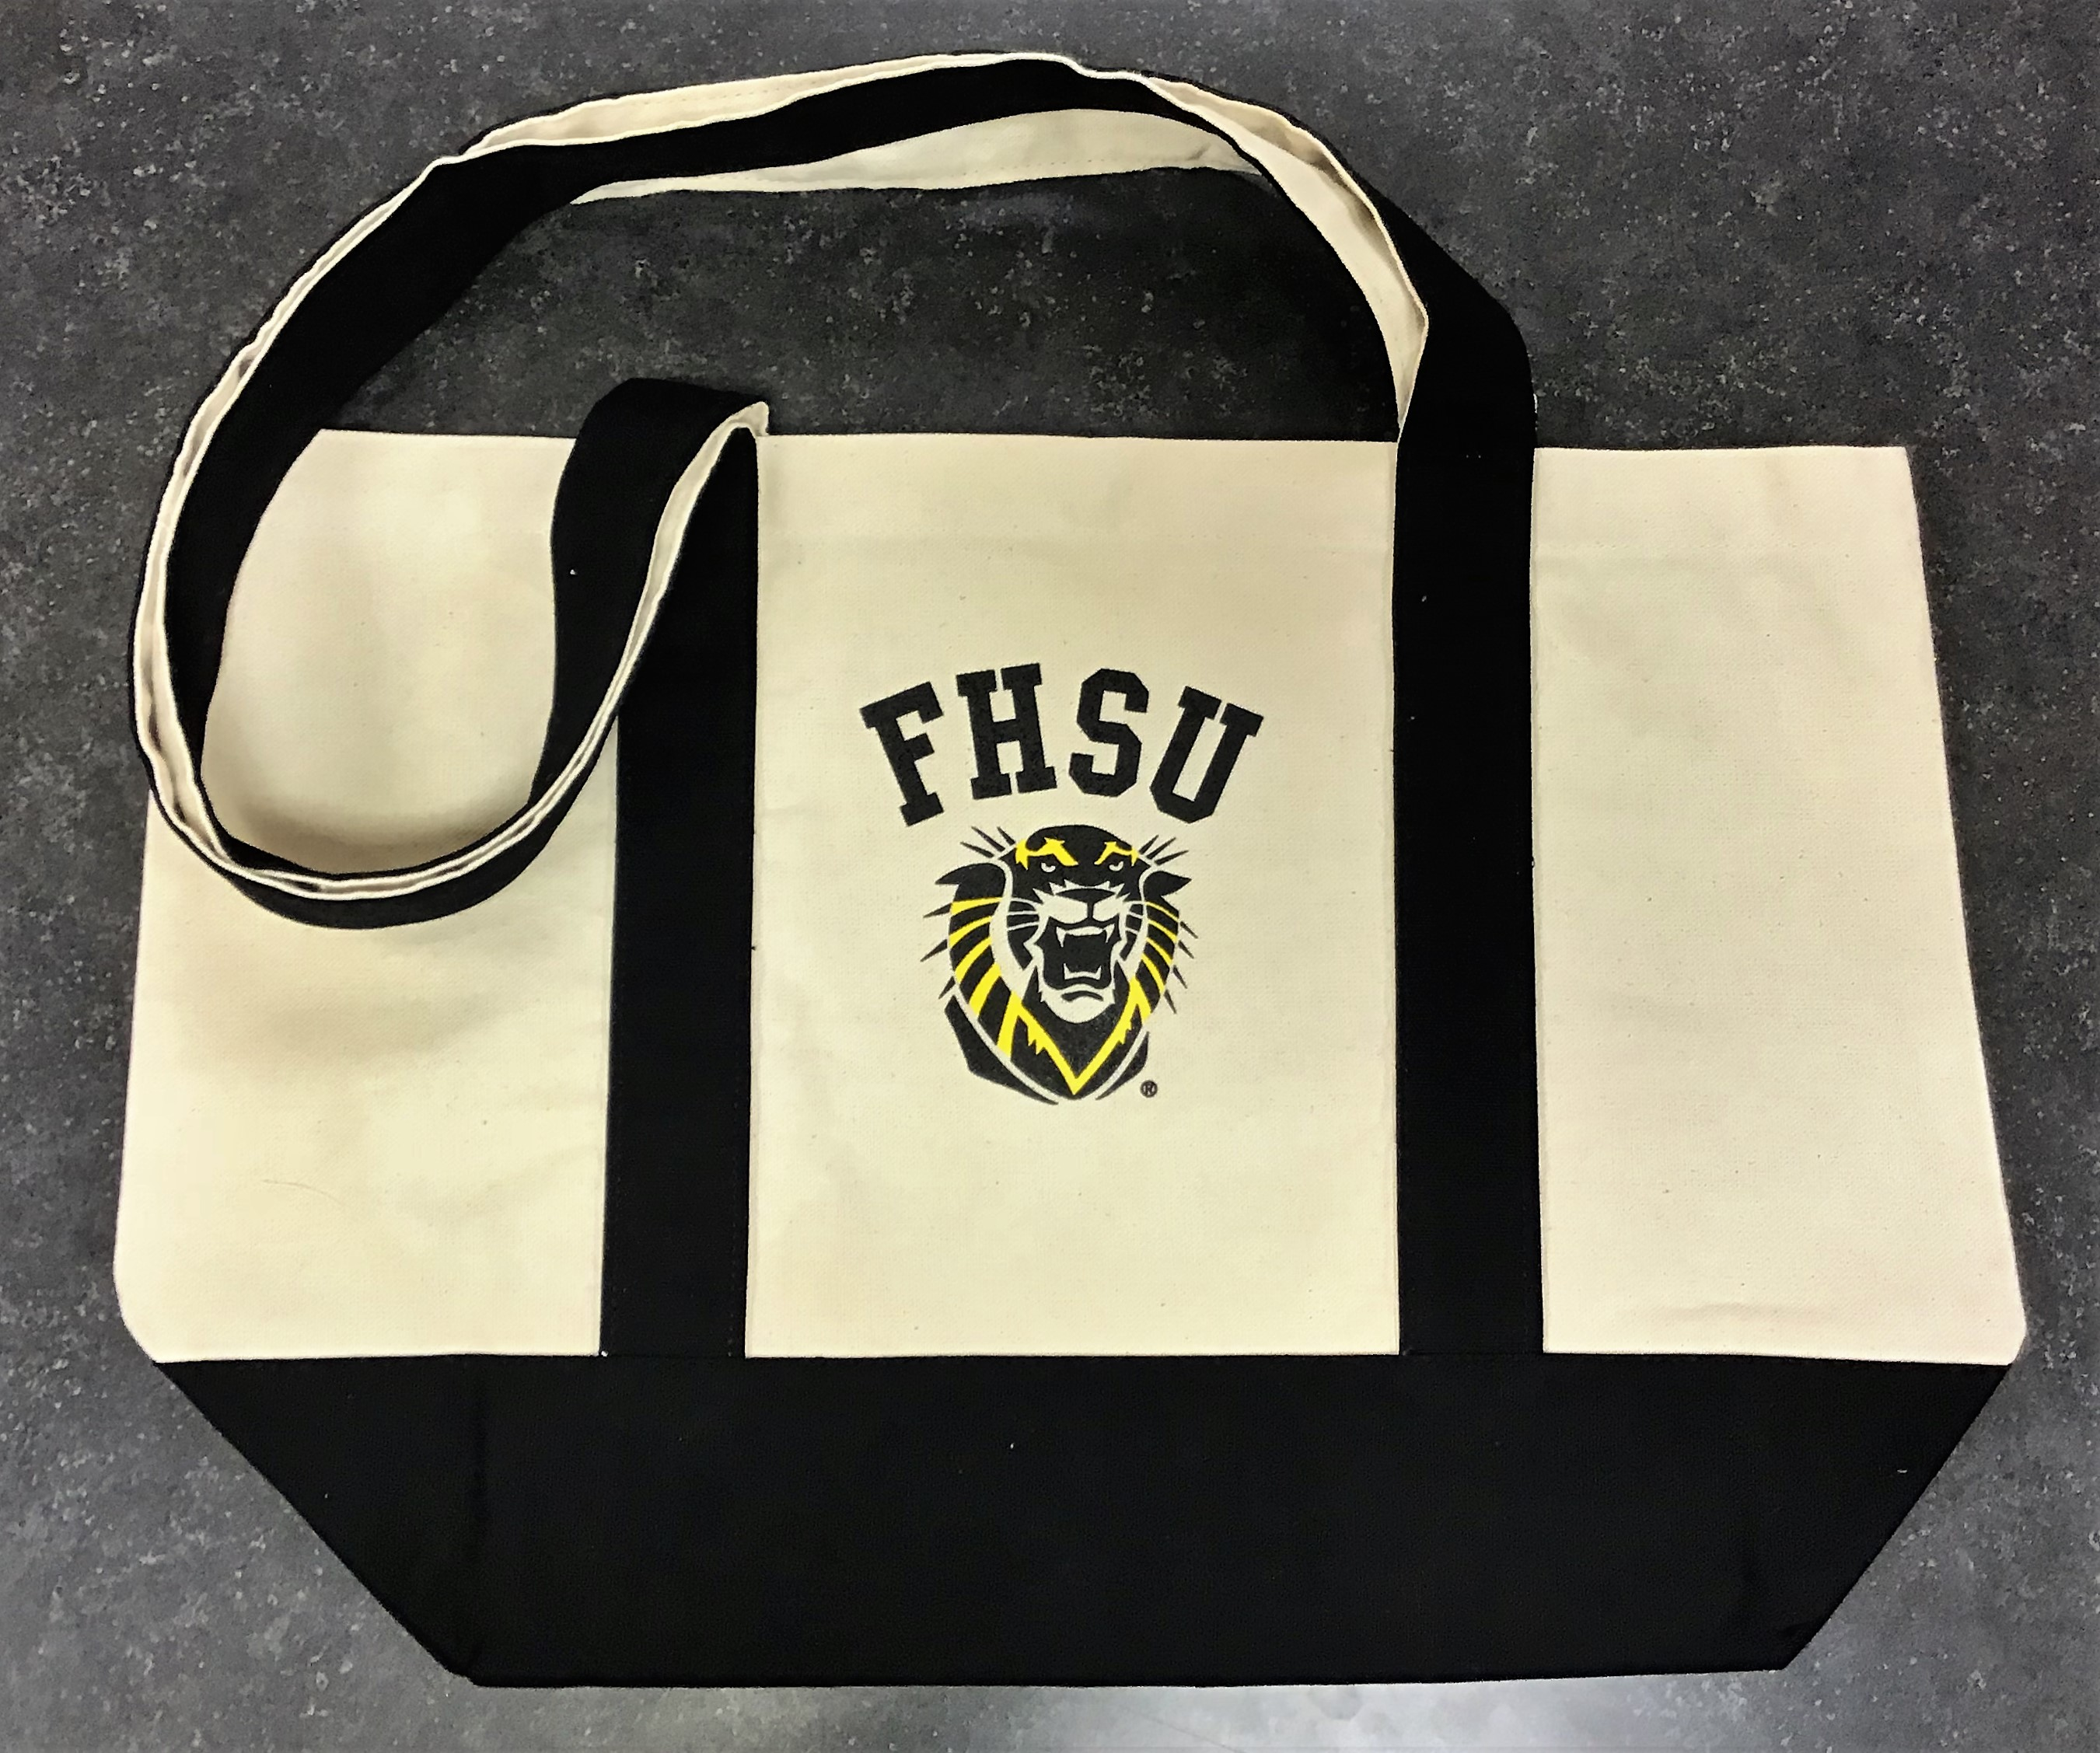 Image for the Tote Bag Gold & Black with Snap Spirit product